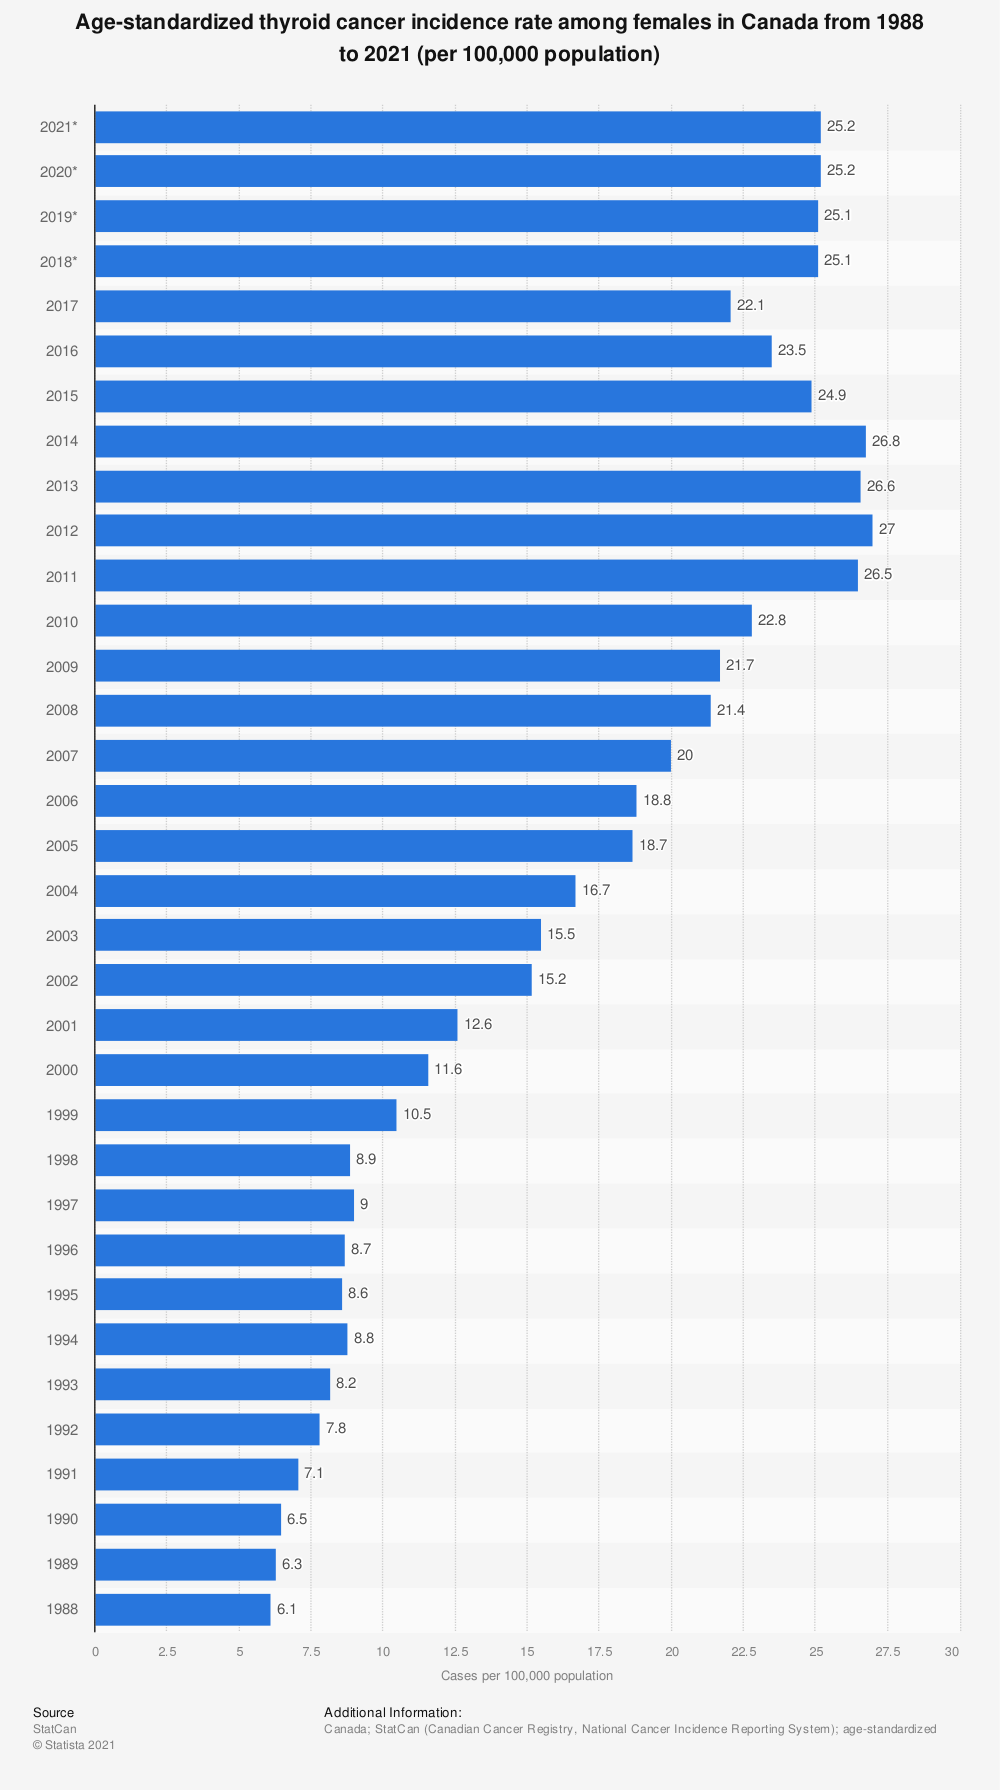 Statistic: Age-standardized thyroid cancer incidence rate among females in Canada from 1988 to 2017 (per 100,000 population) | Statista